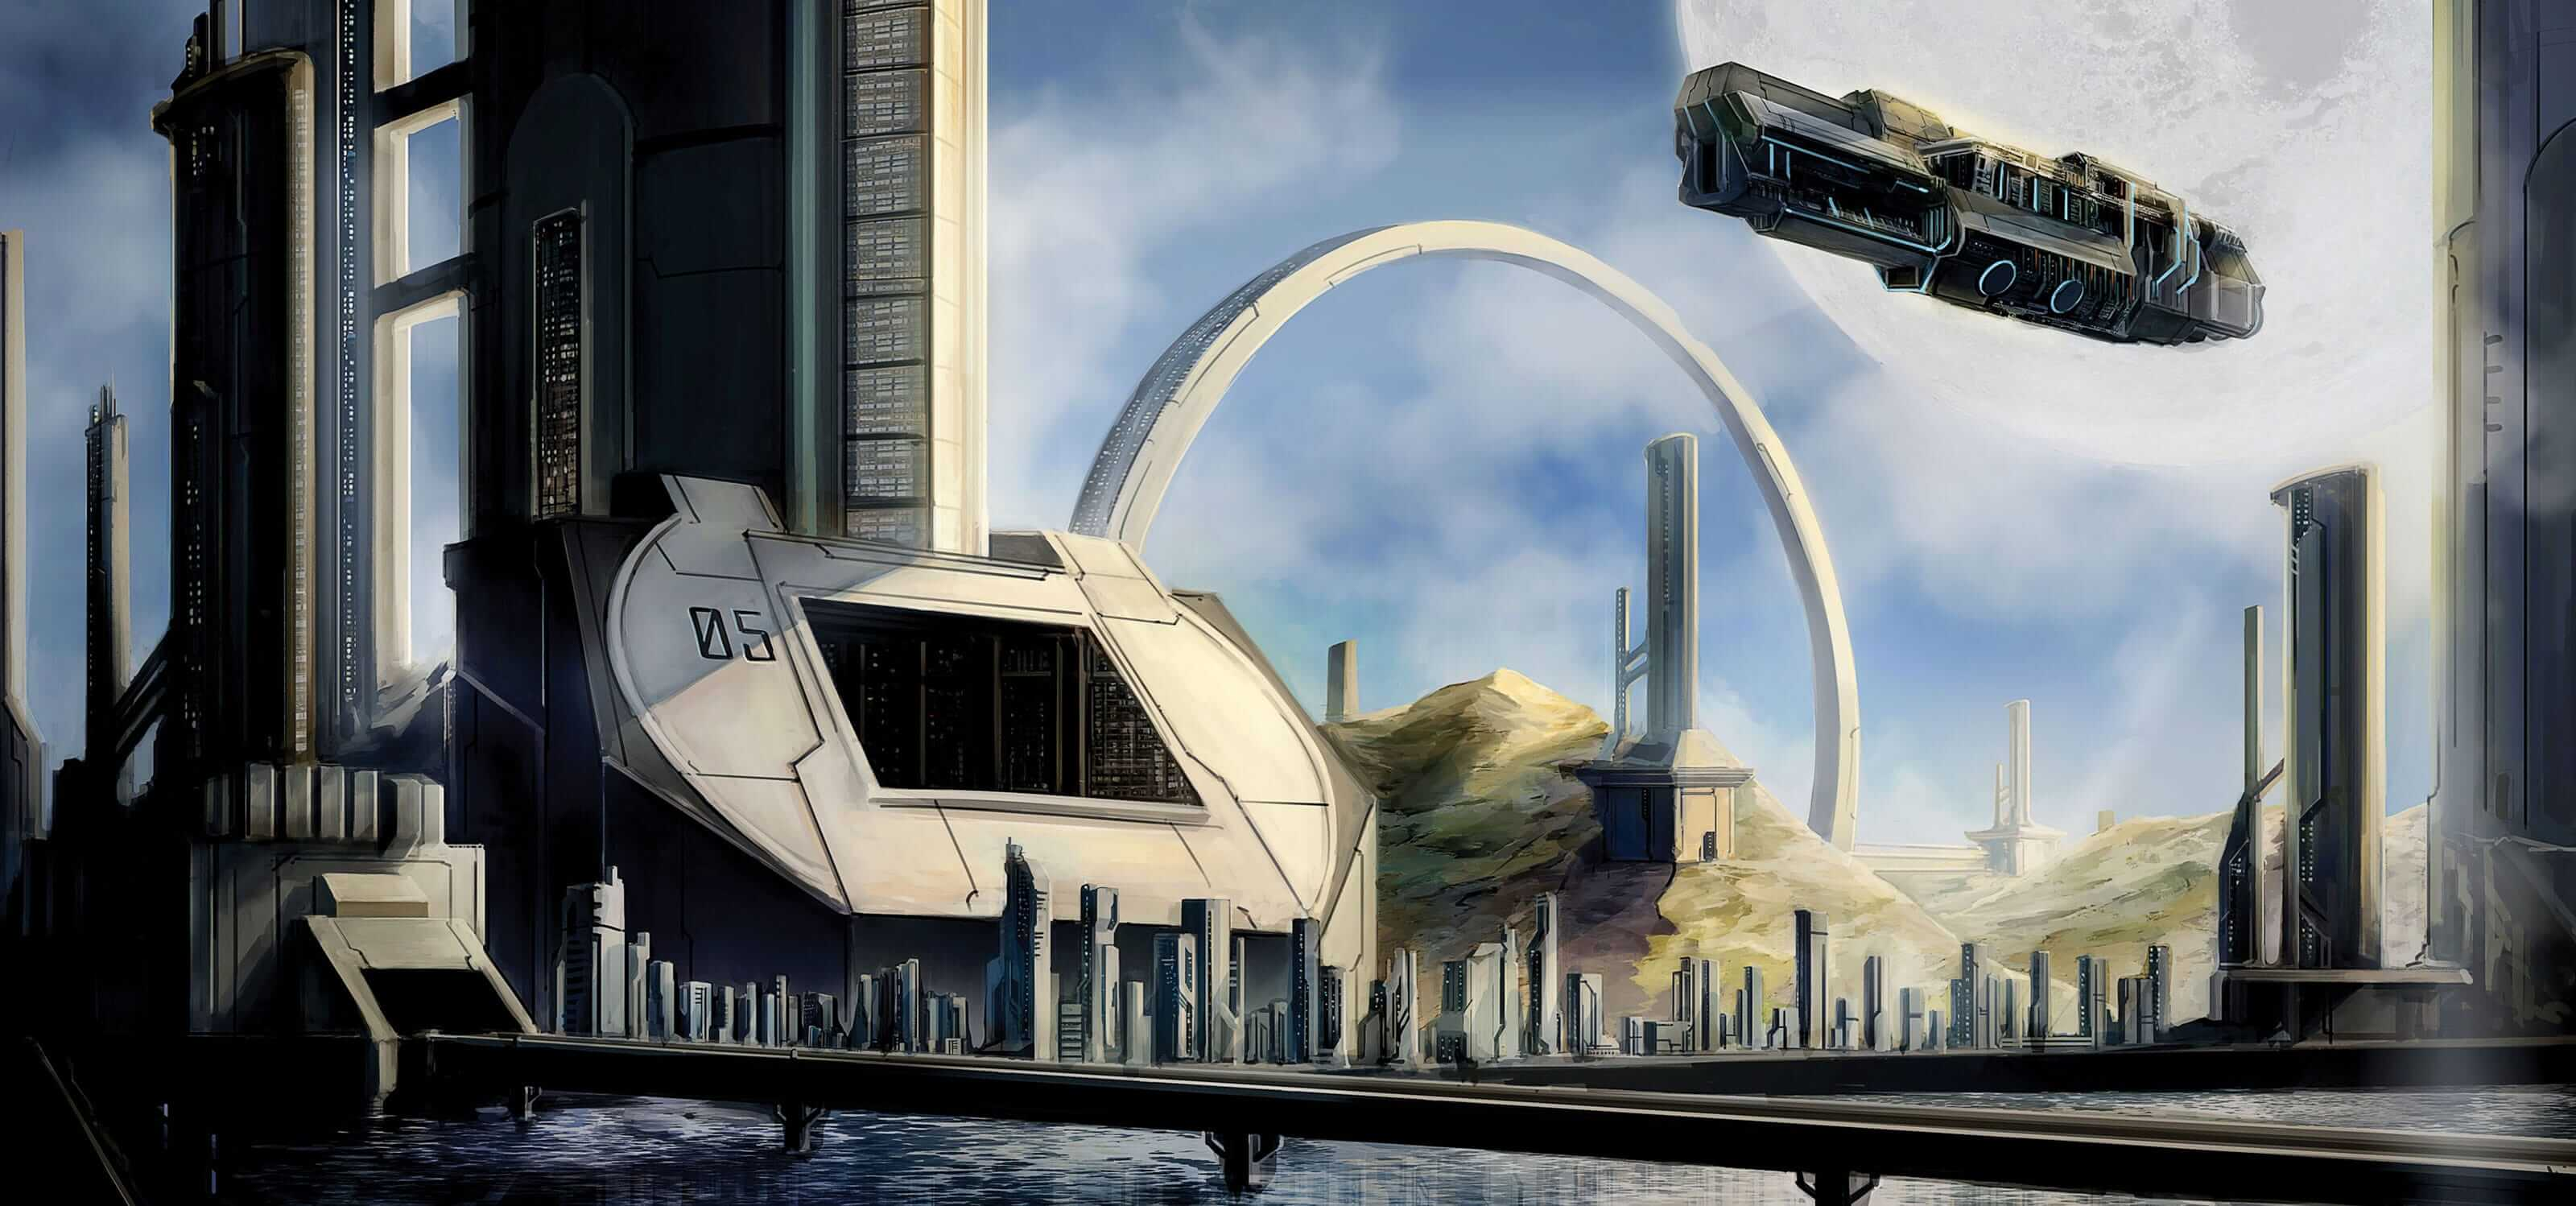 Digital painting of a futuristic city landscape with a large transport spaceship flying over the harbor